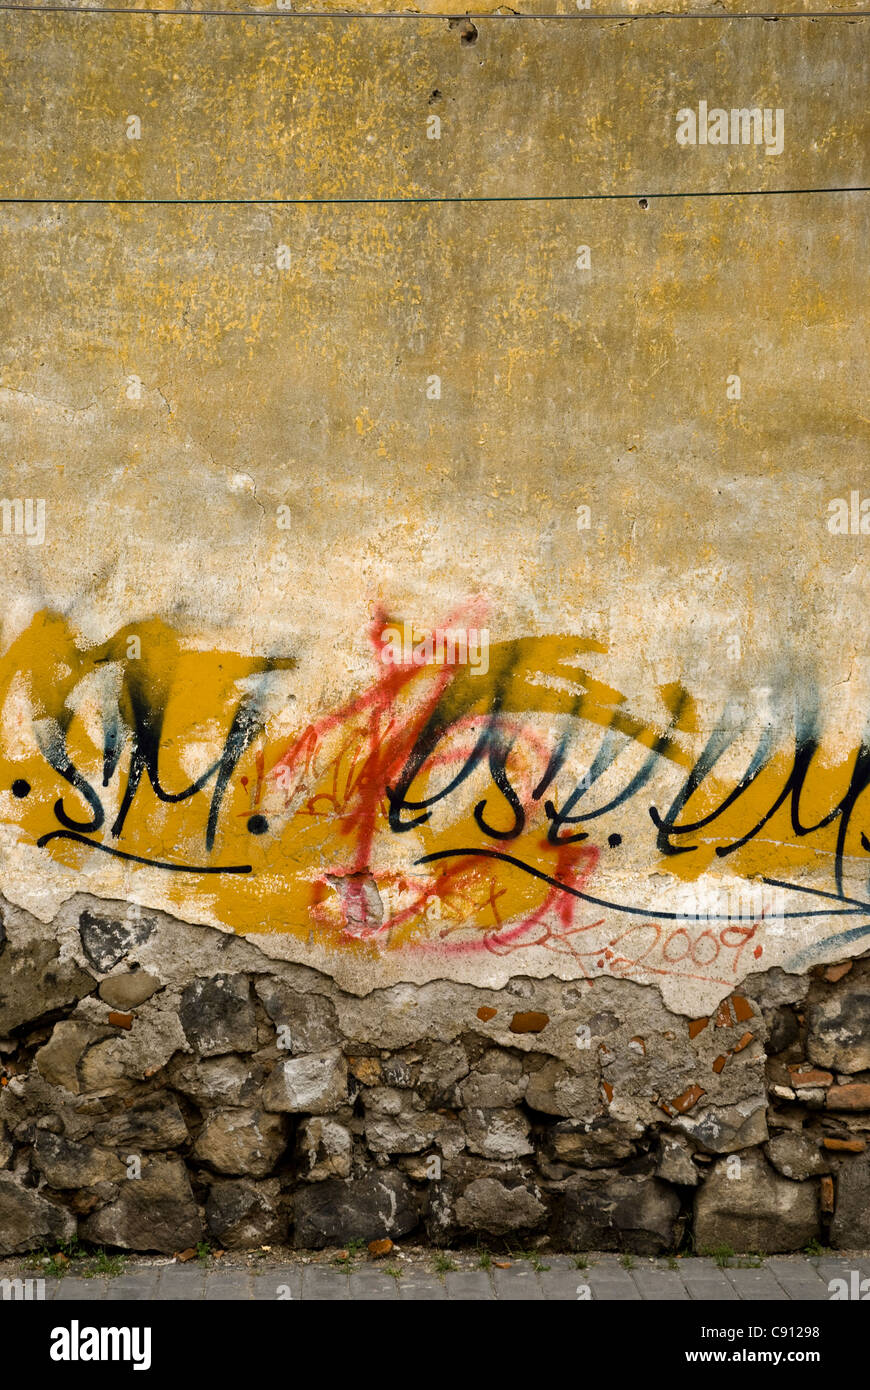 Yellow graffiti on yellow wall Stock Photo, Royalty Free Image ...